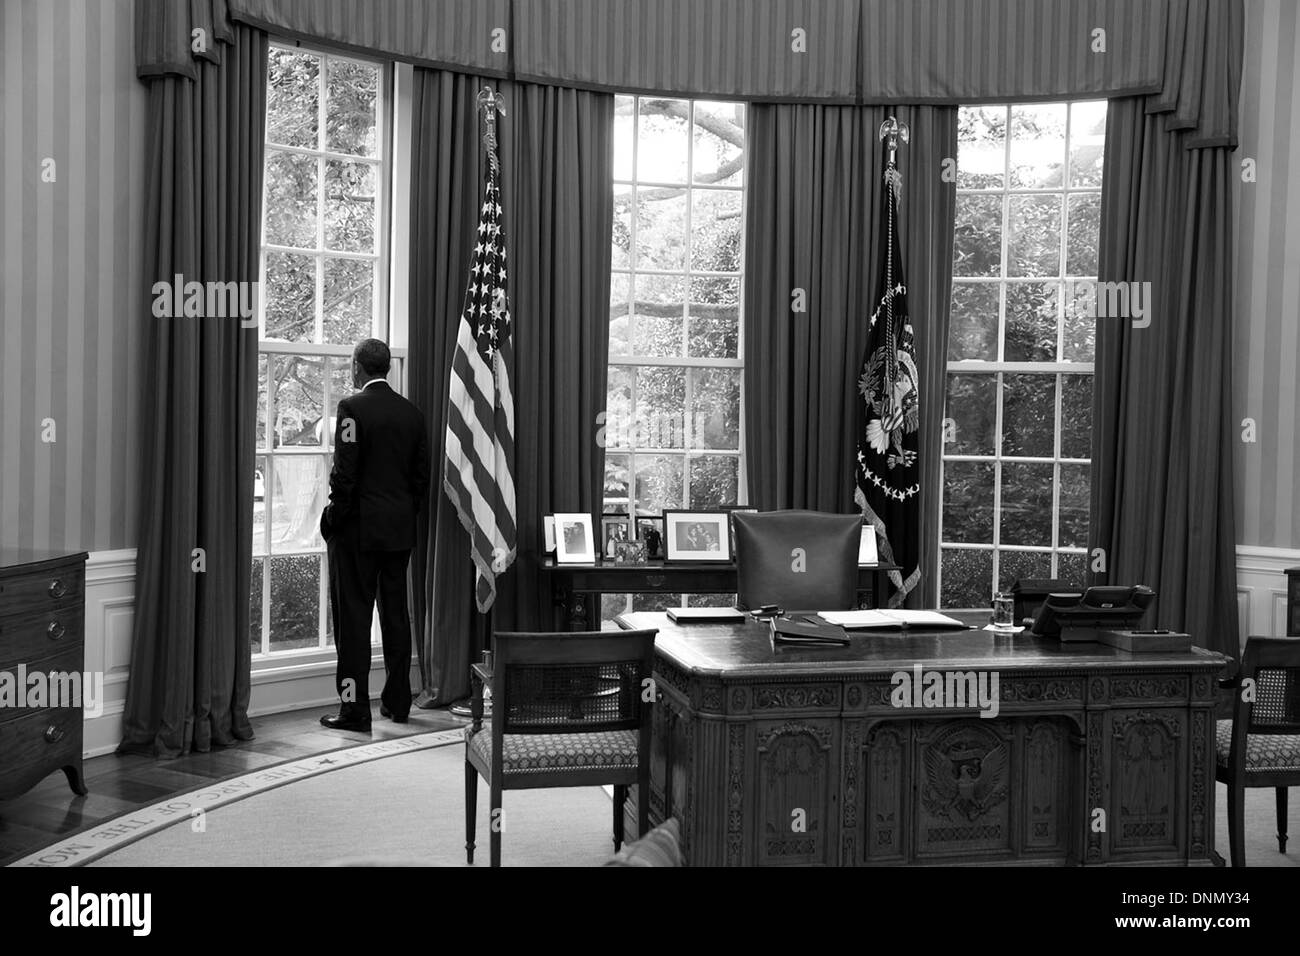 US President Barack Obama looks out the window of the Oval Office August 29, 2013 in Washington, DC. - Stock Image